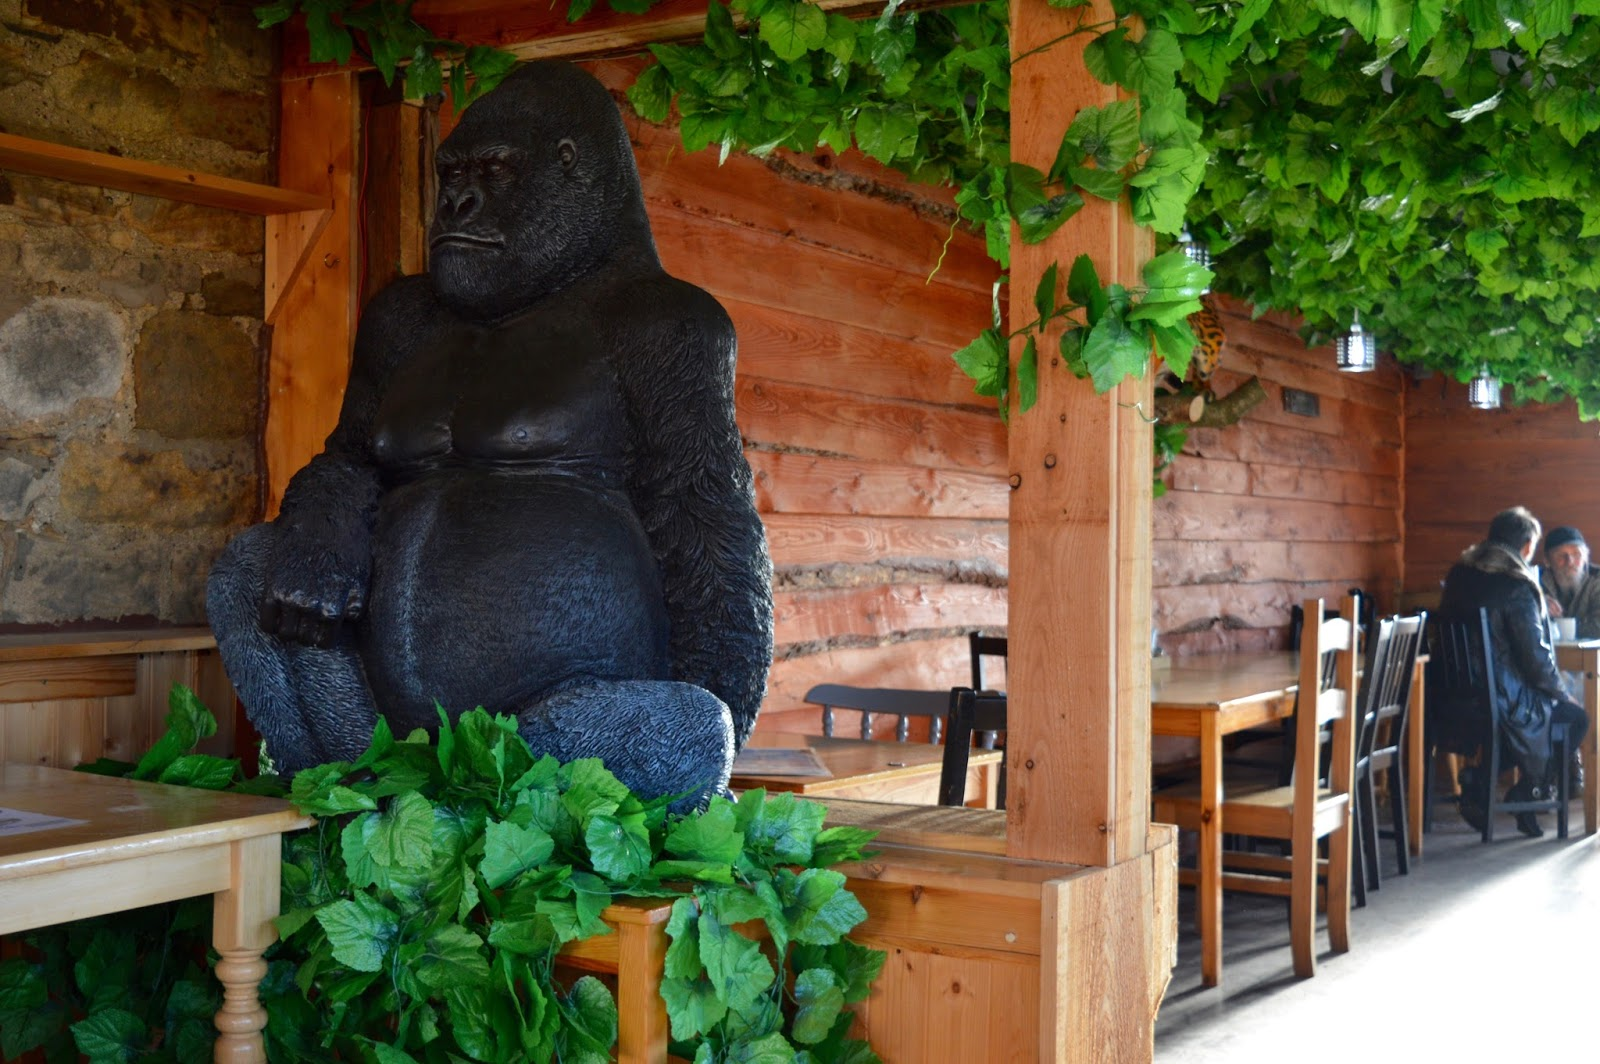 Northumberland County Zoo Reviews - gorilla in cafe